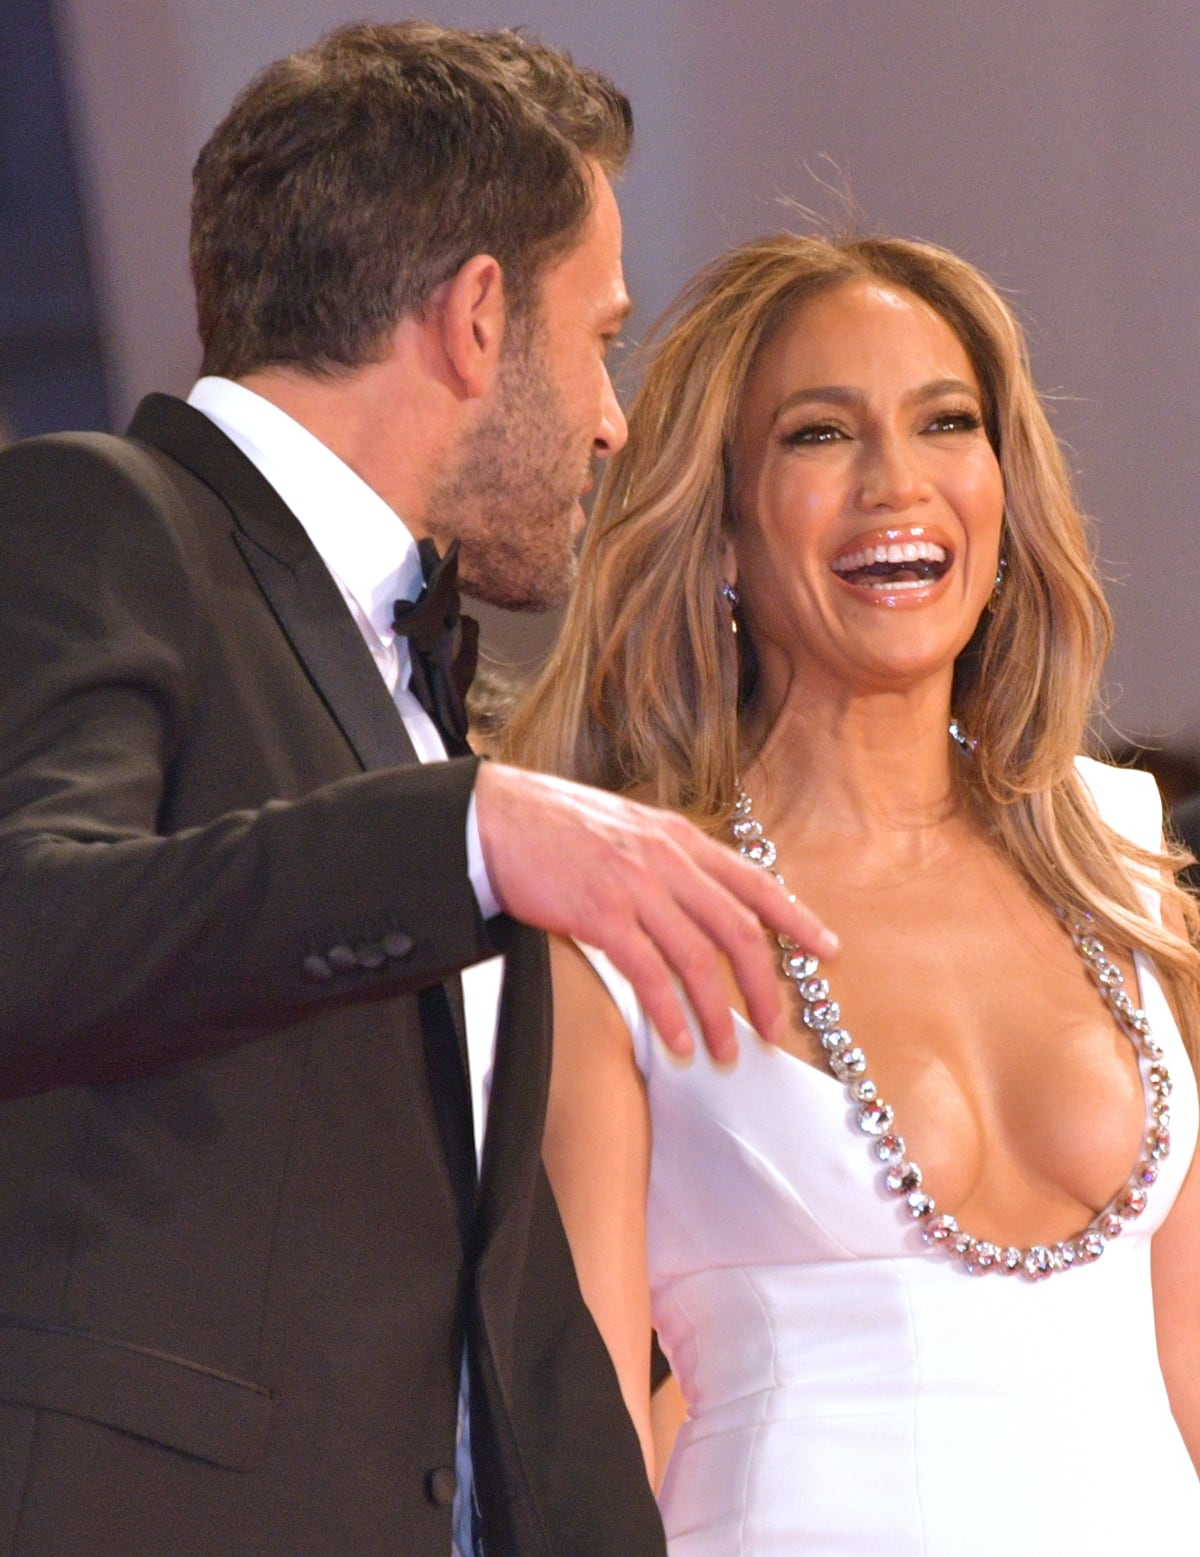 Jennifer Lopez shows cleavage in a white mermaid Georges Hobeika dress with a Swarovski-embellished plunging neckline